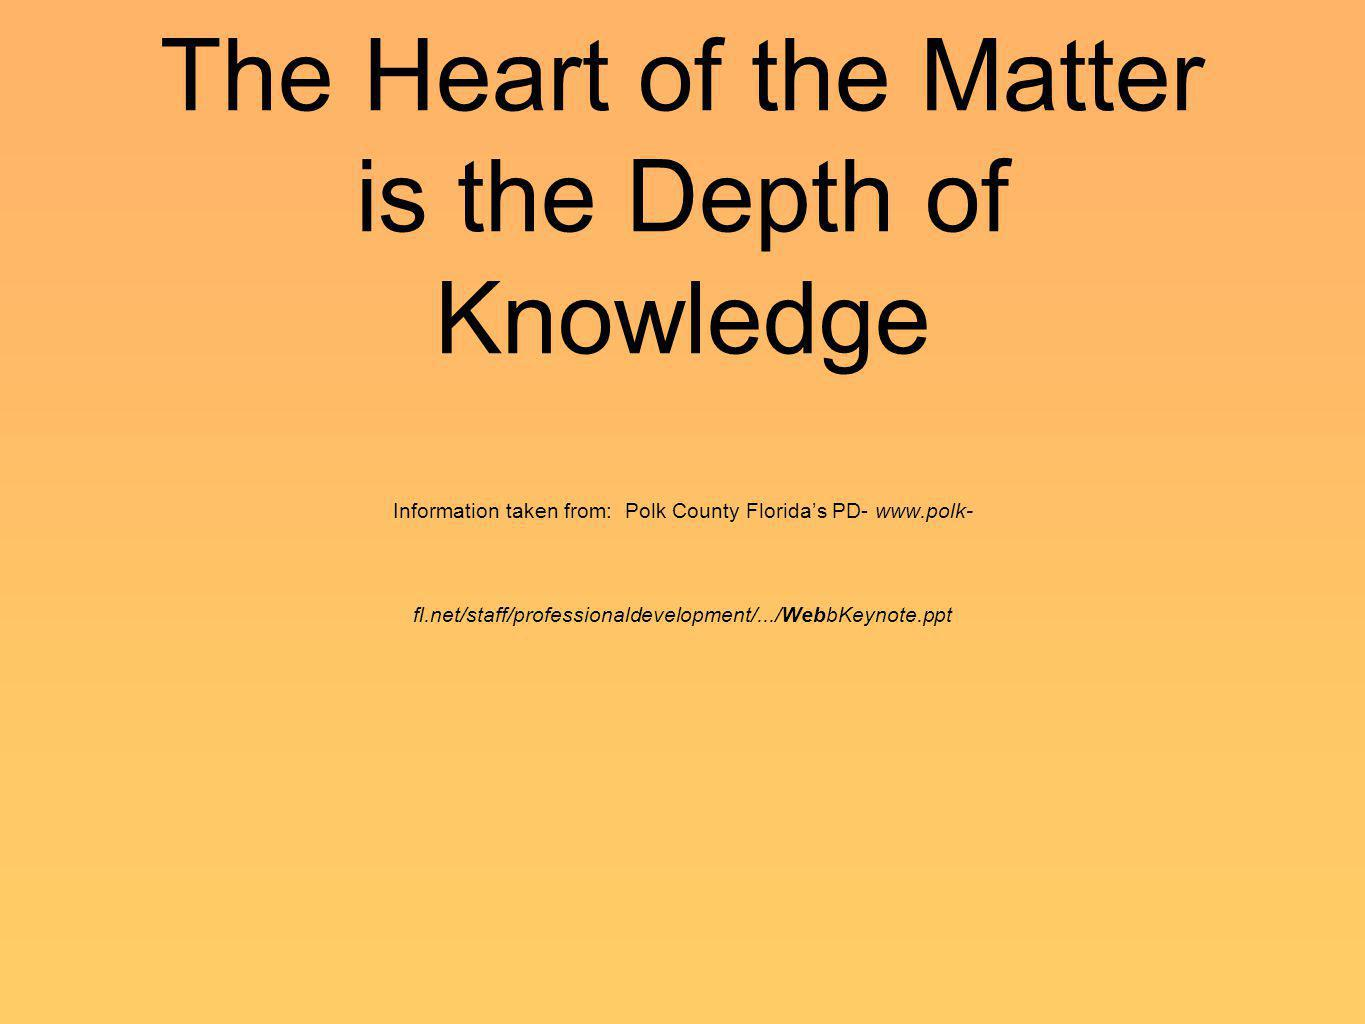 The Heart of the Matter is the Depth of Knowledge Information taken from: Polk County Florida's PD- www.polk-fl.net/staff/professionaldevelopment/.../WebbKeynote.ppt